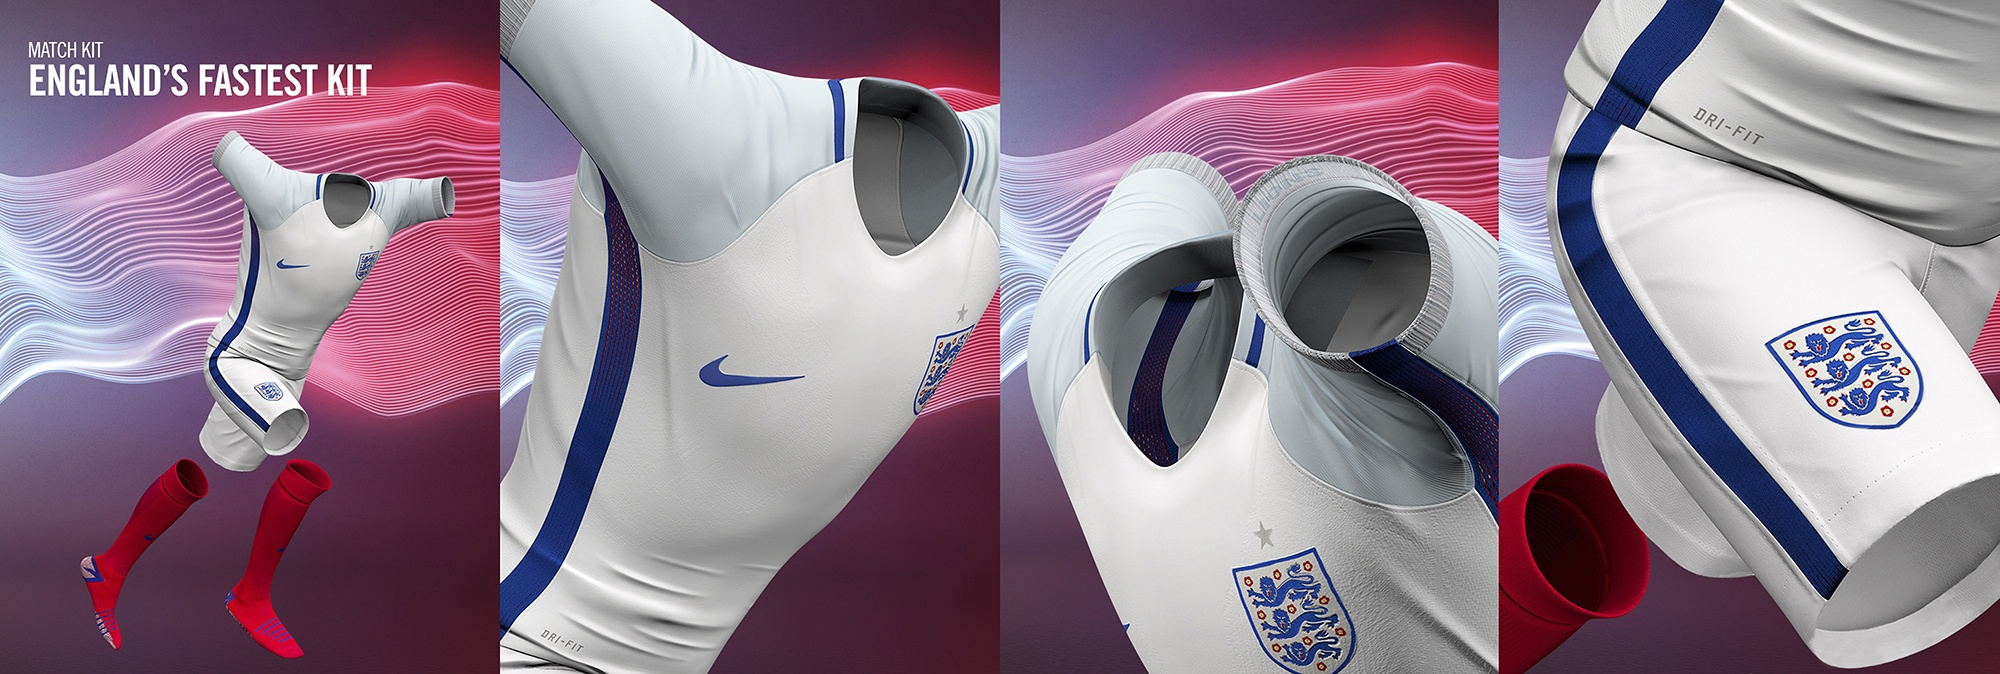 CGI nike england football kit 2016